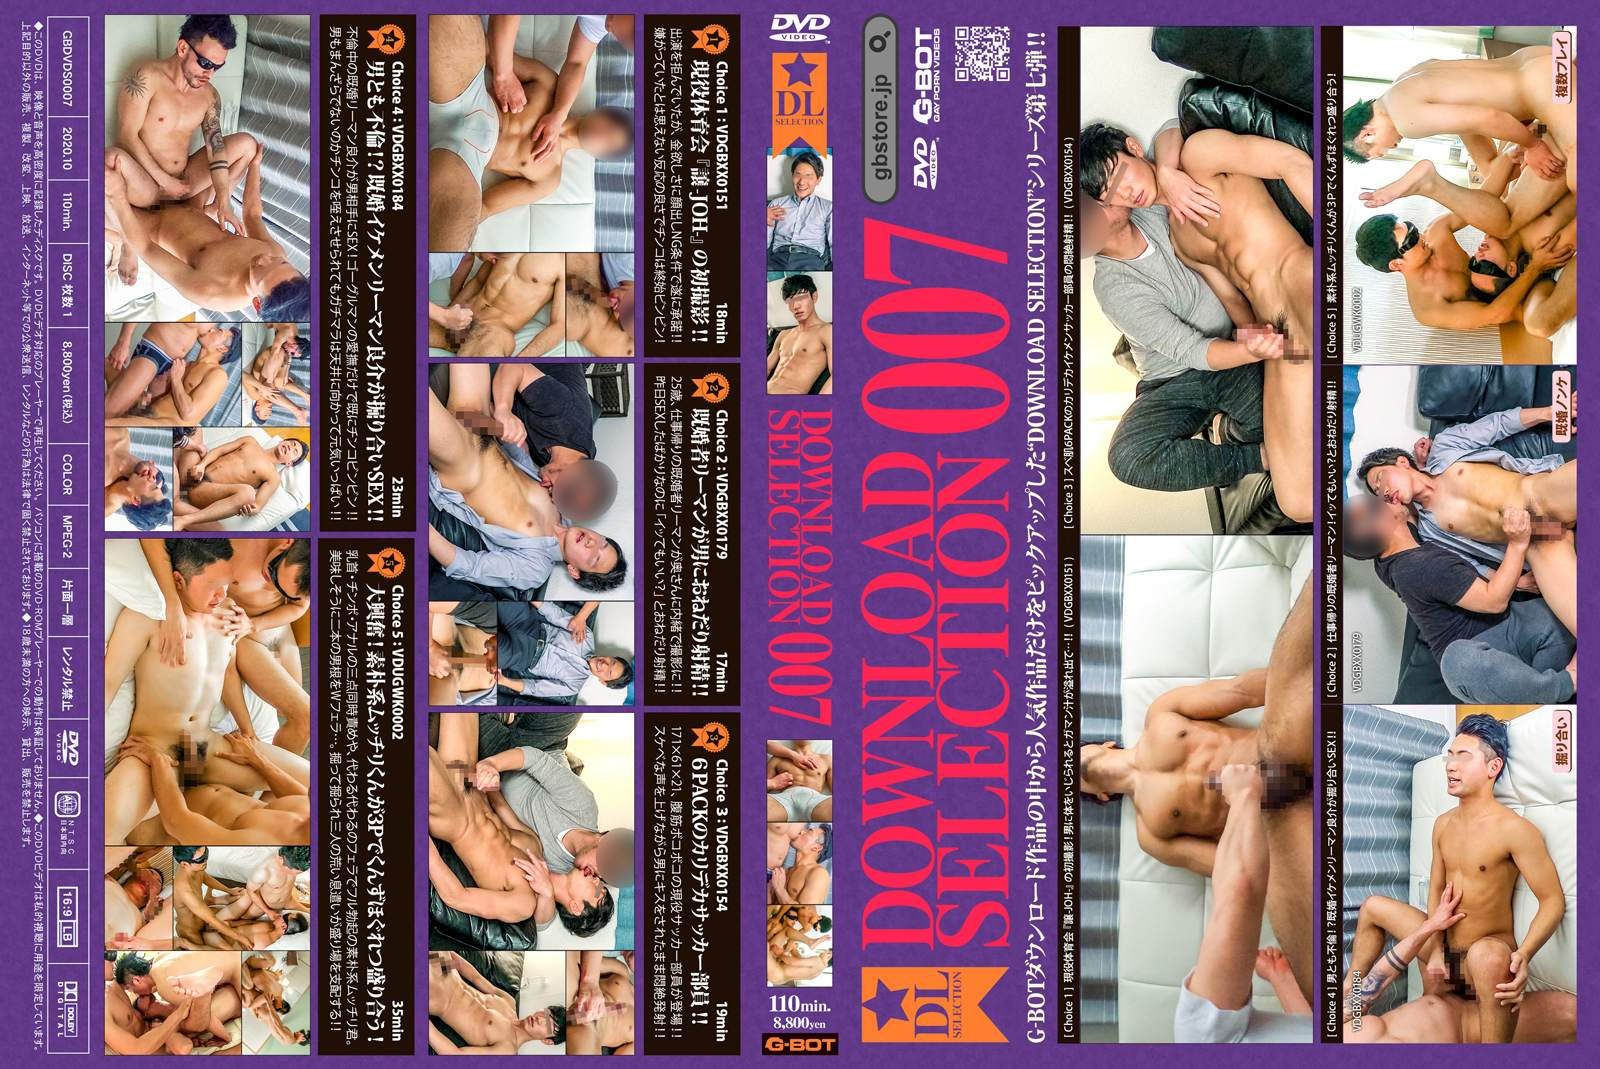 G-BOT – DOWNLOAD SELECTION 007 – GBDVDS0007